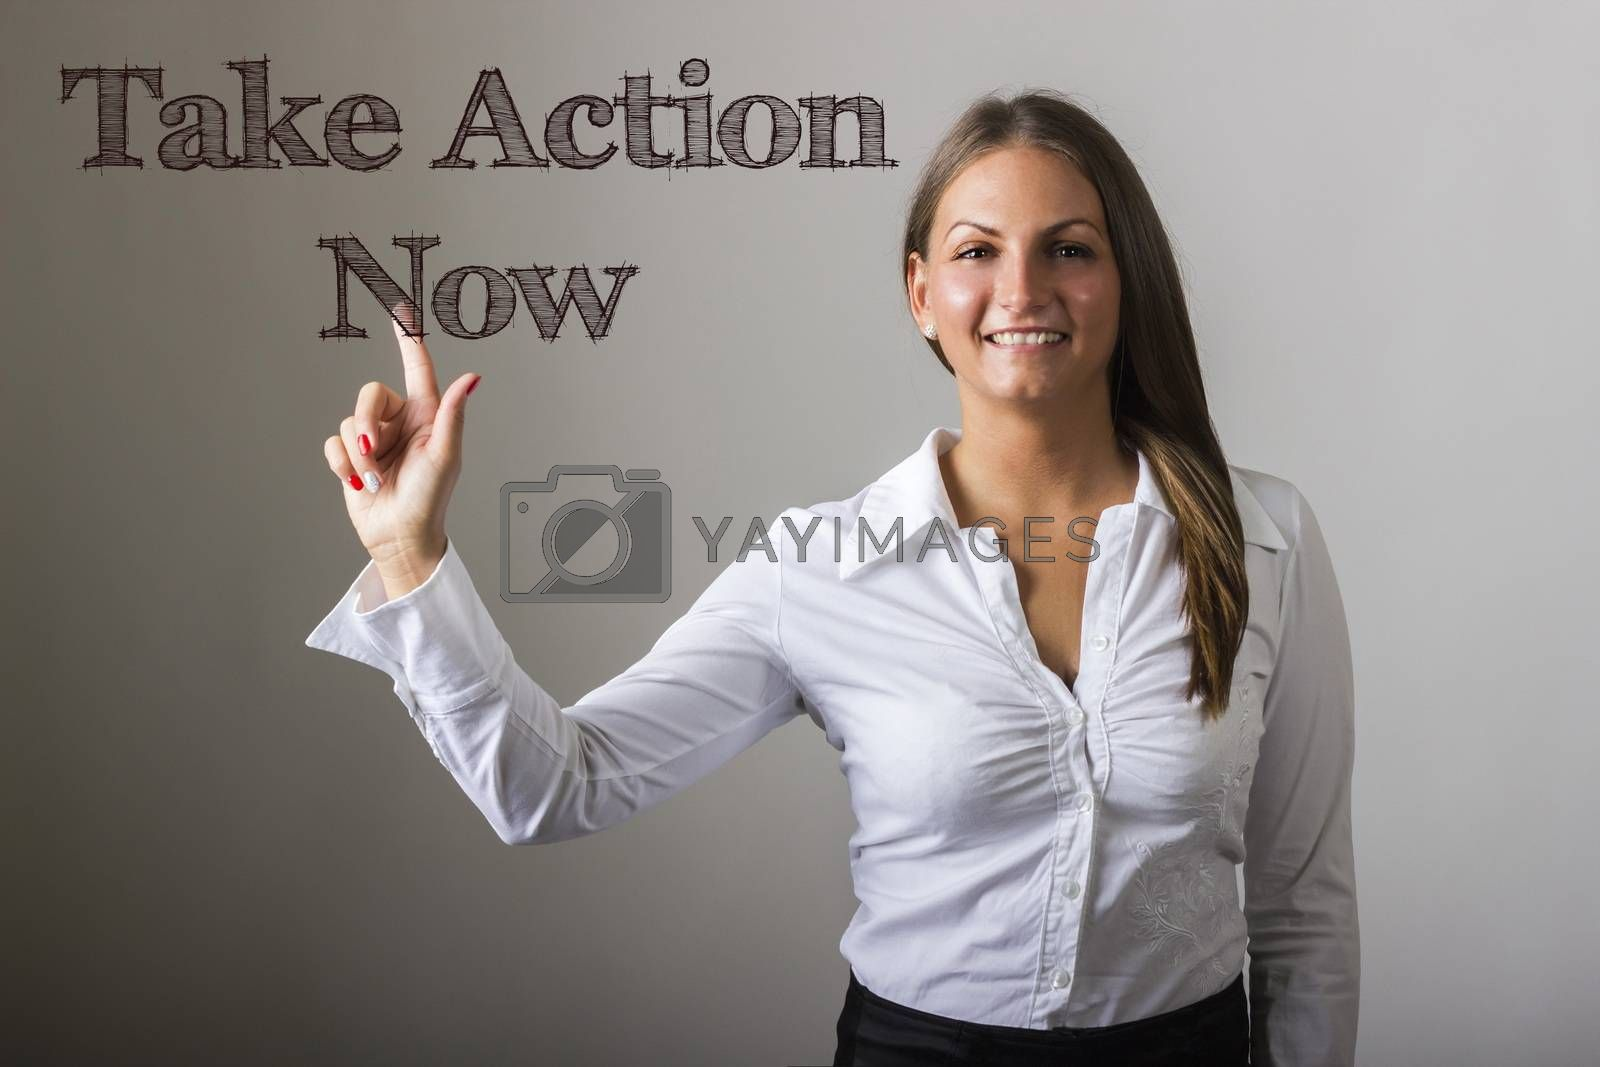 Take Action Now - Beautiful girl touching text on transparent surface - horizontal image